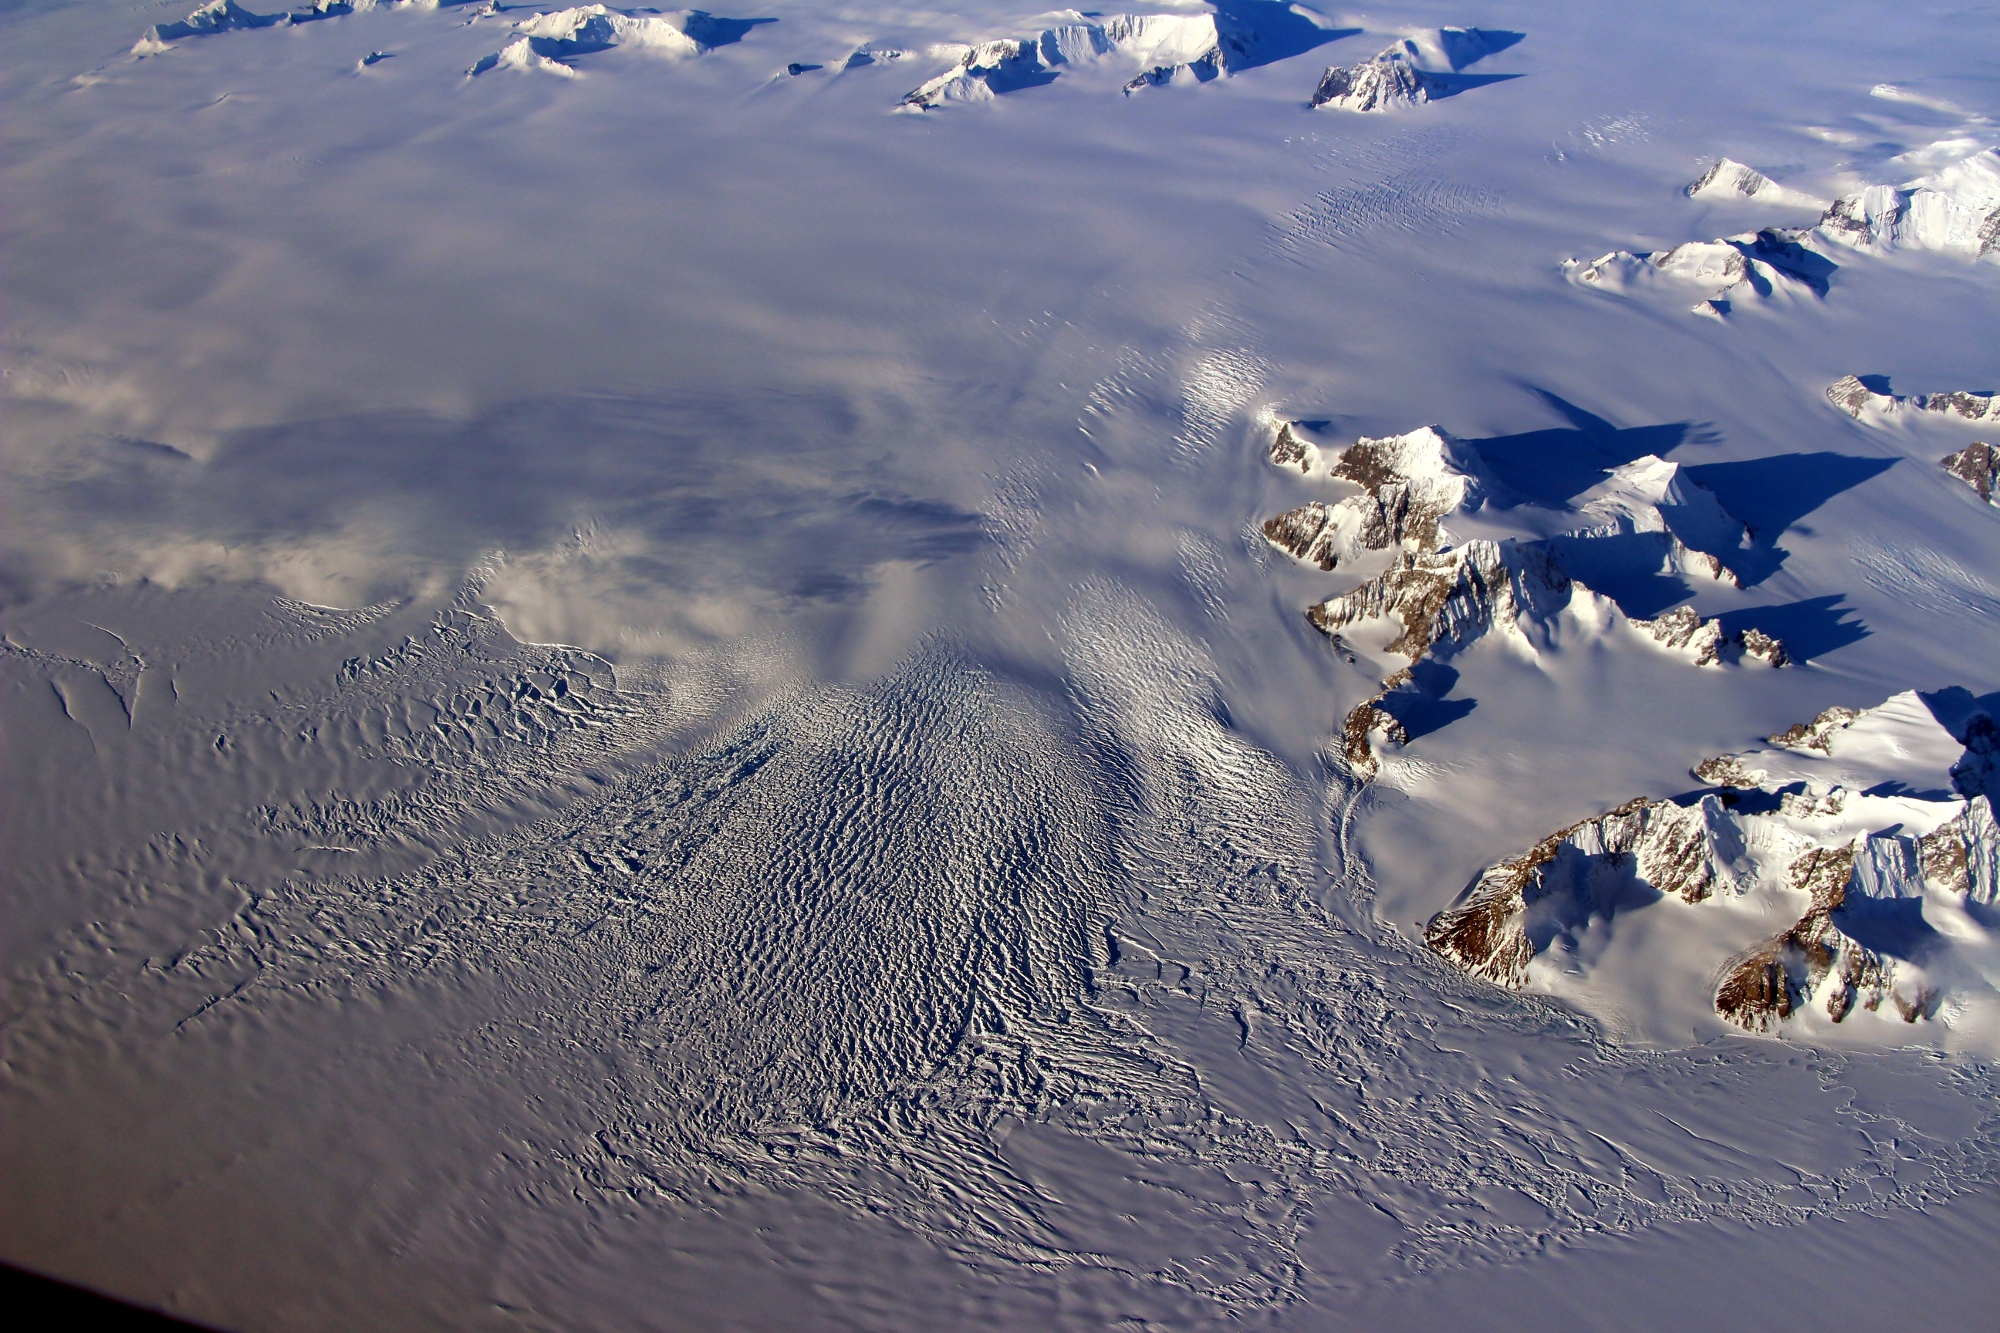 Operation IceBridge reveals further Antarctic ice loss, a new report from NASA shows in a series of disturbing photos from the 8th annual Antarctic survey.